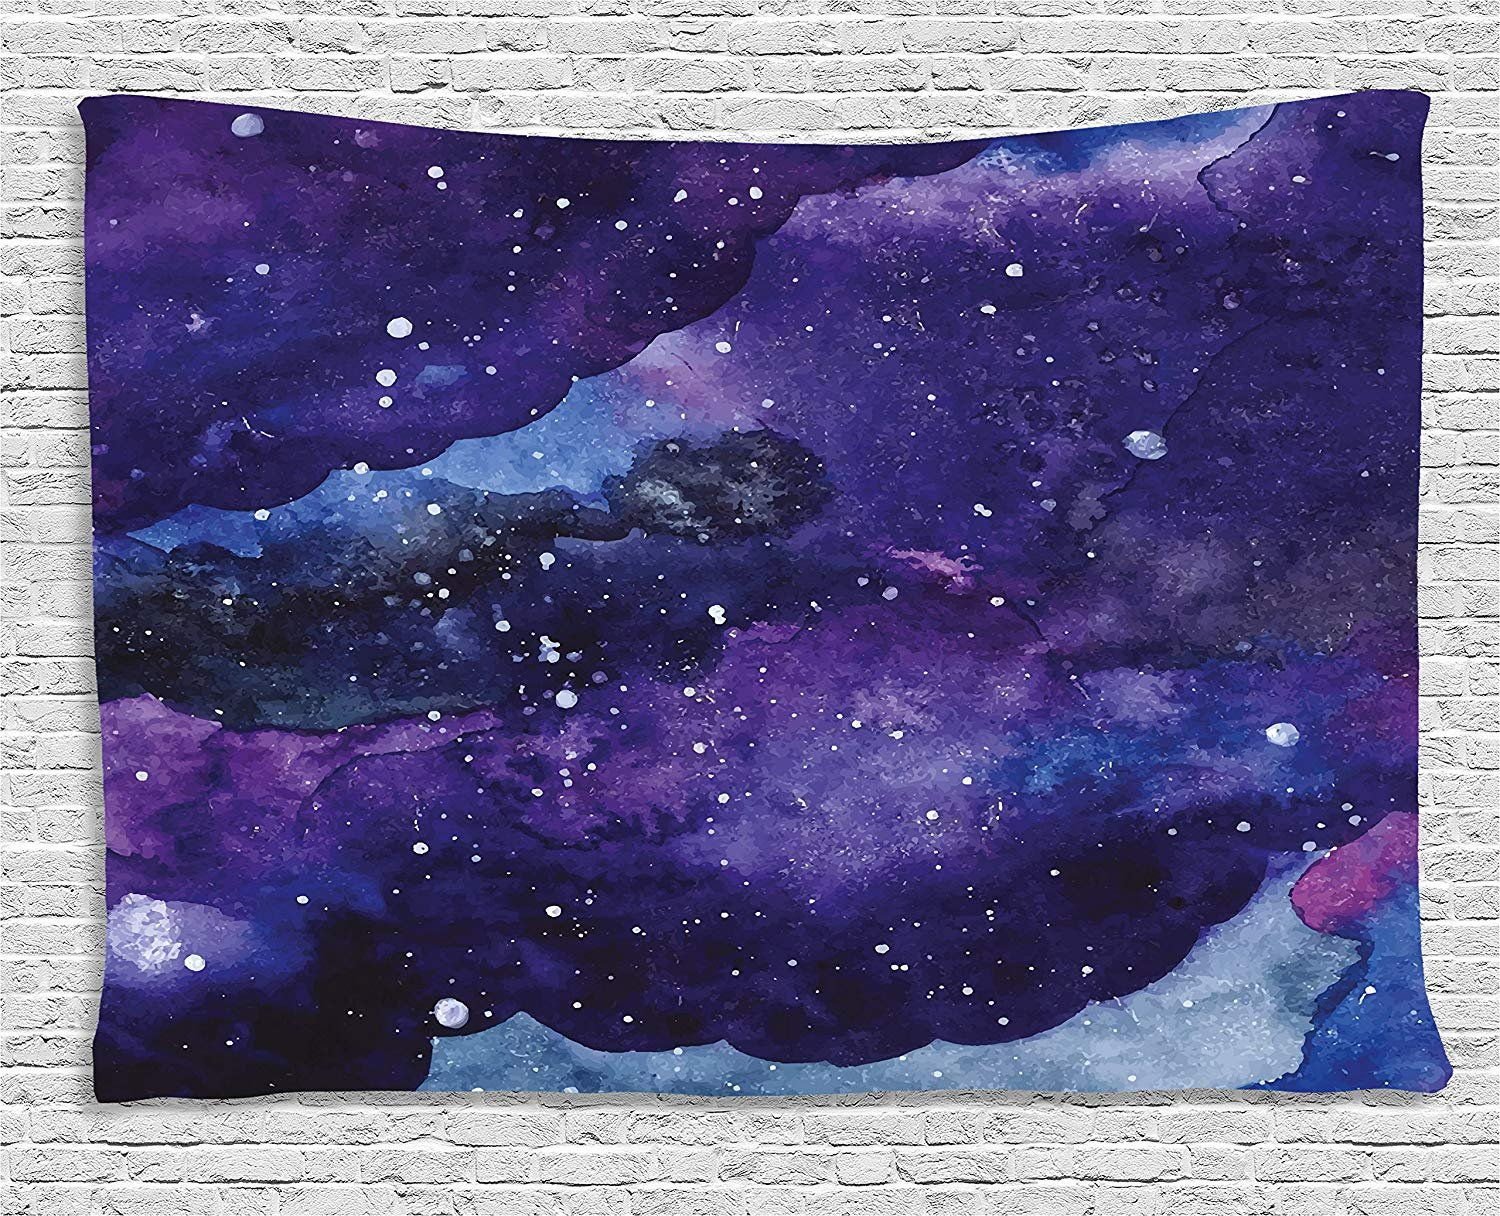 60WX40L Inches Outer Space Tapestry by Wall Hanging for Bedroom Living Room Dorm Starry Night Sky Paint Strokes Galaxy Cosmic Universe Theme Navy Blue Light Blue Purple